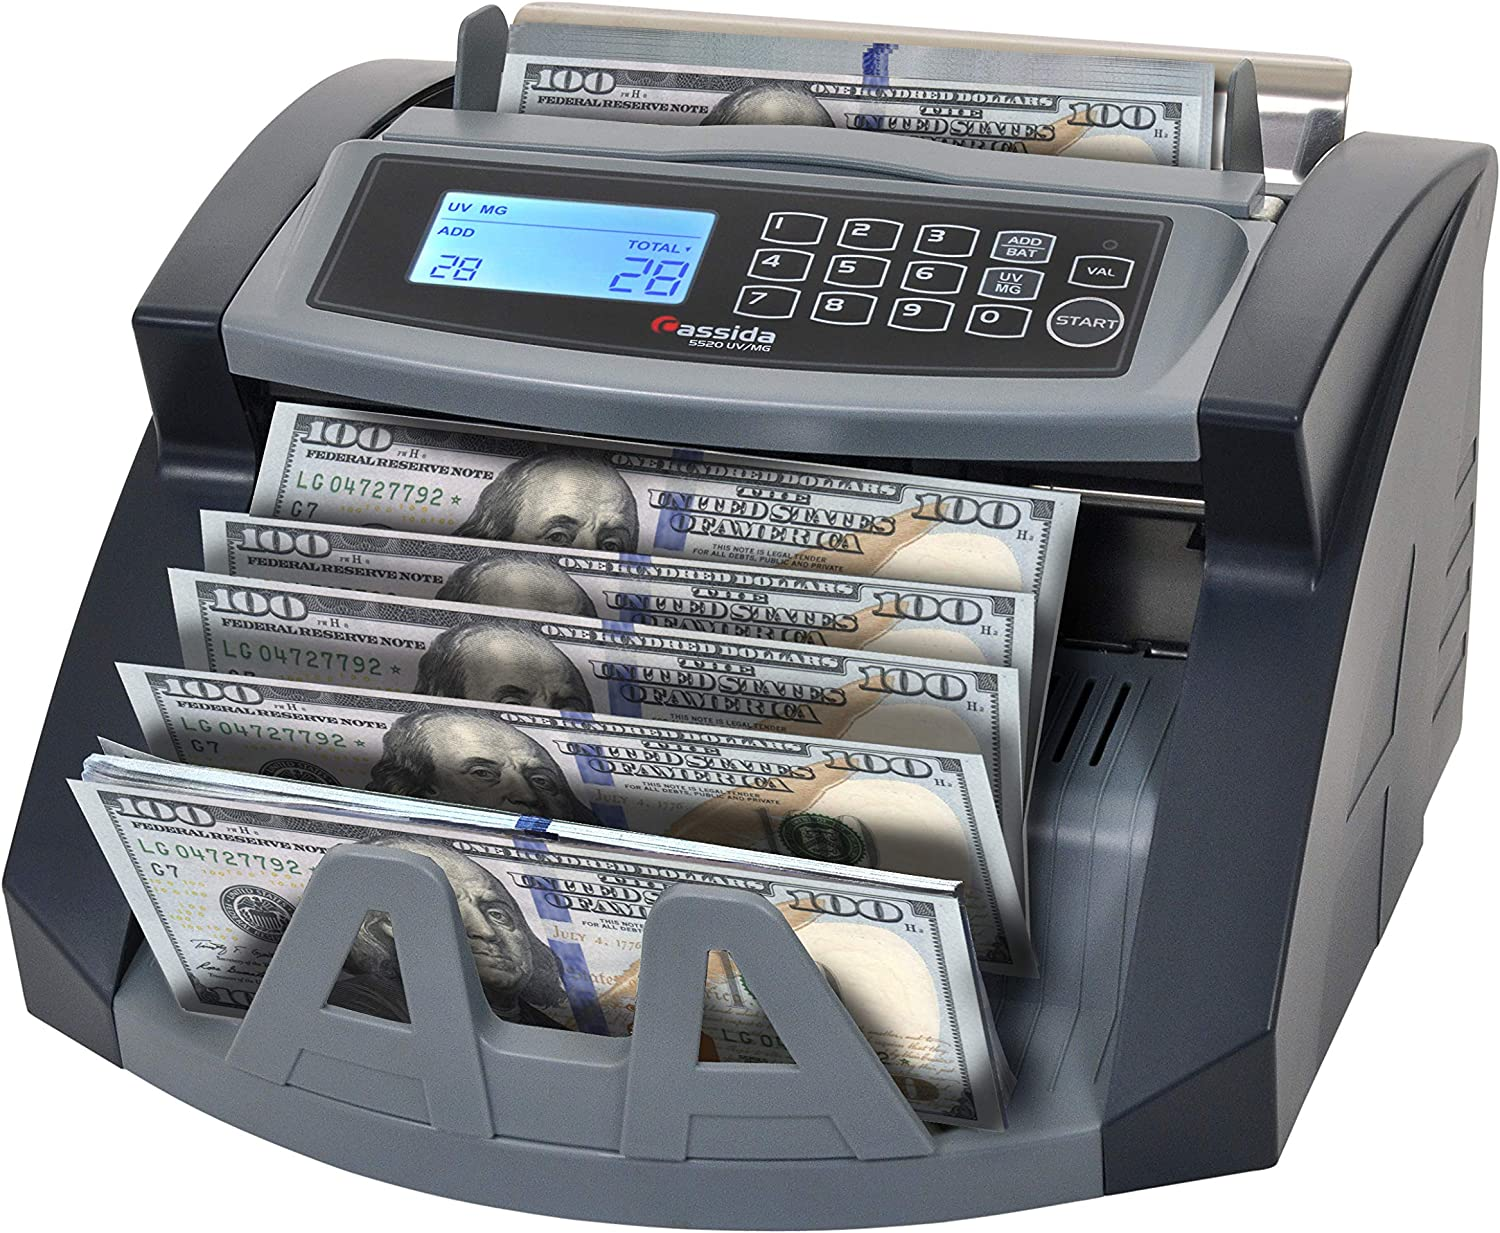 Cassida 30 UV/MG Money Counter with Counterfeit Bill Detection